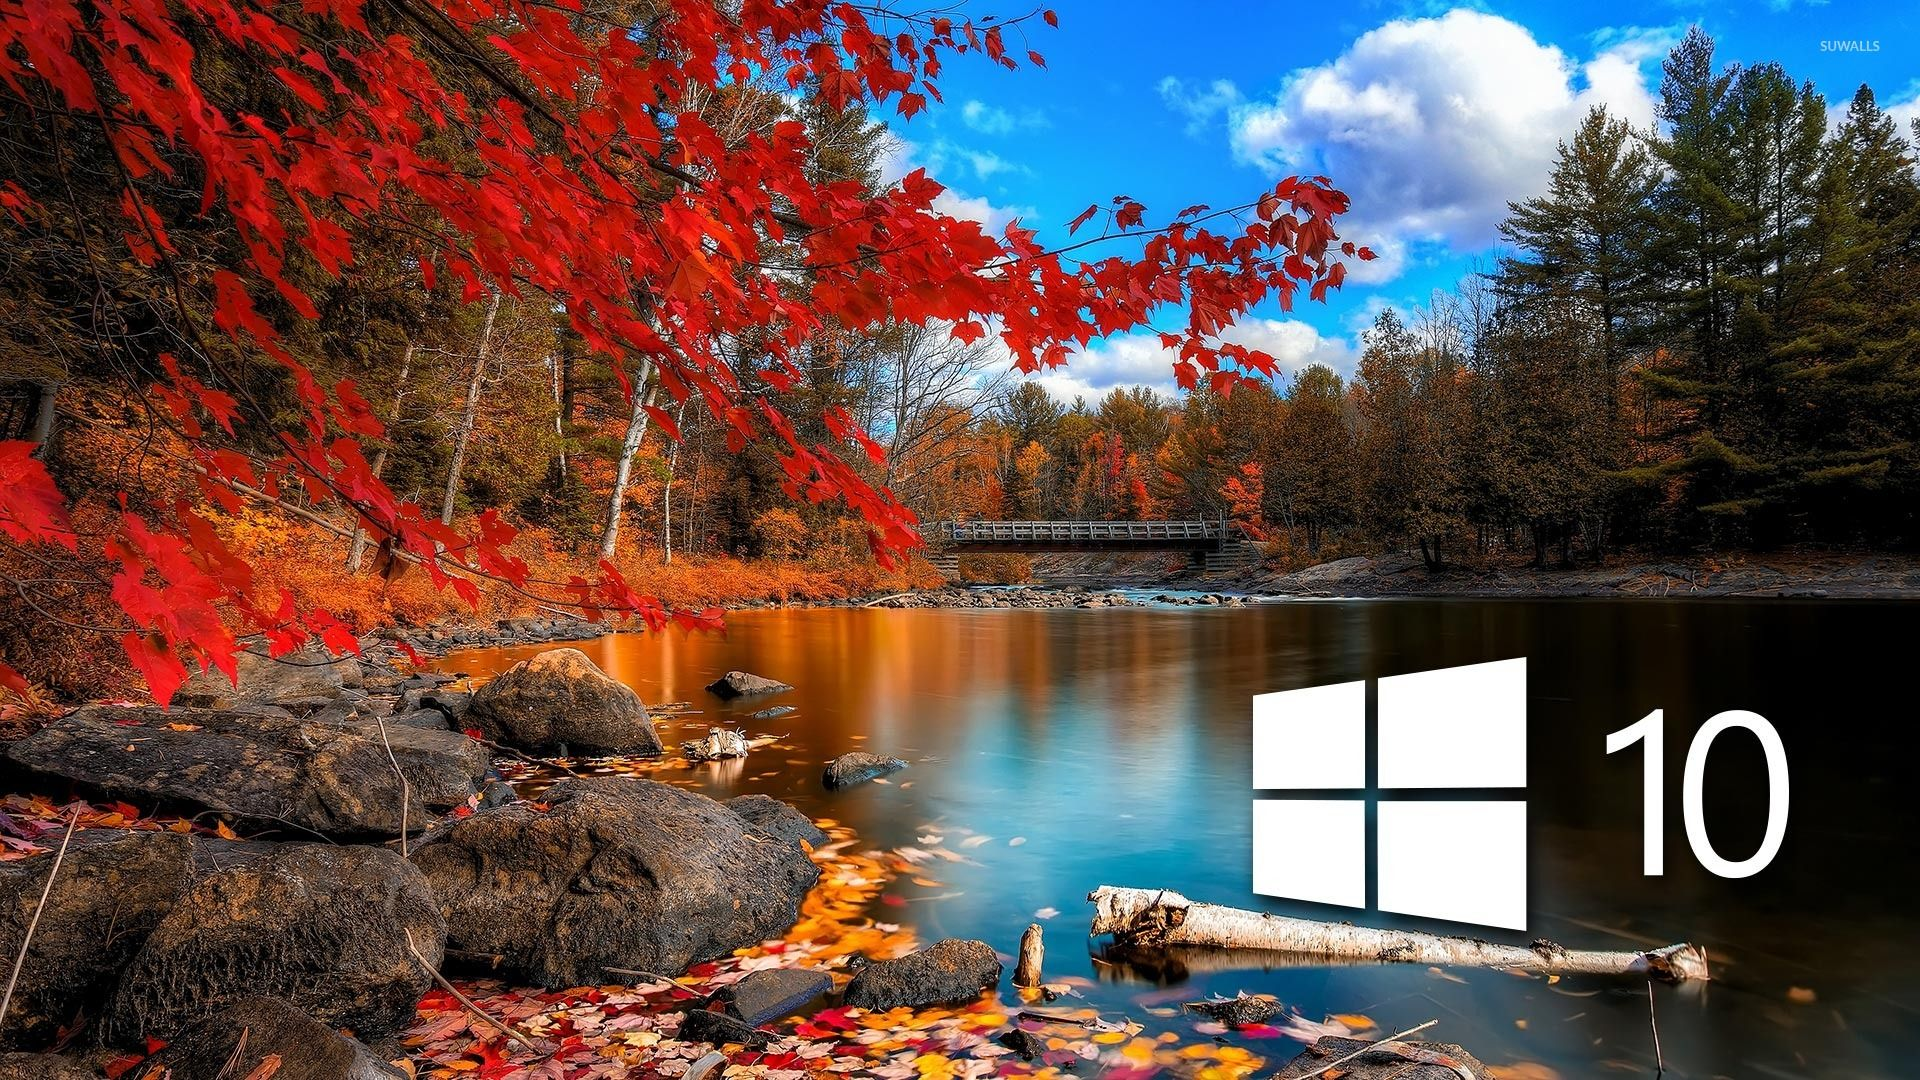 Find Out Window 10 Wallpapers Hd As Wallpaper Hd On Sotoak Com Iphone Android Wallpaper Window 10 In 2020 Autumn Scenery Nature Desktop Beautiful Nature